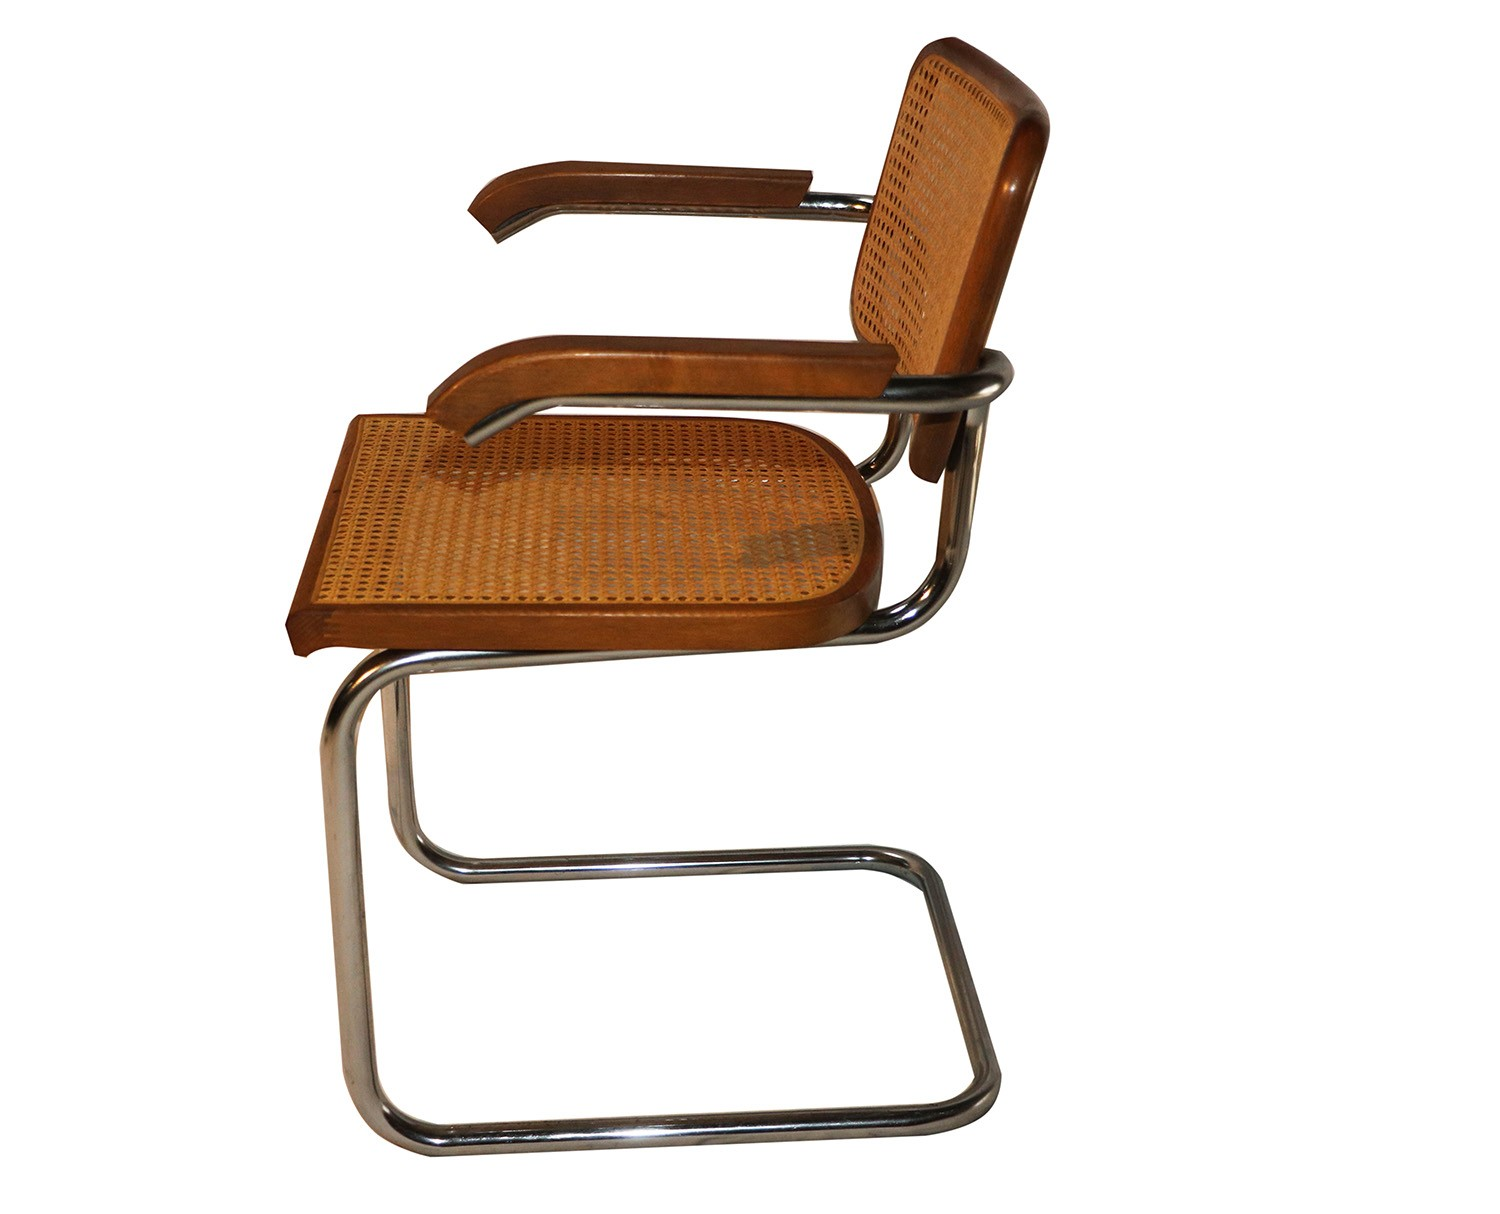 marcel breuer cesca chair with armrests baseball desk style cane arm chairs